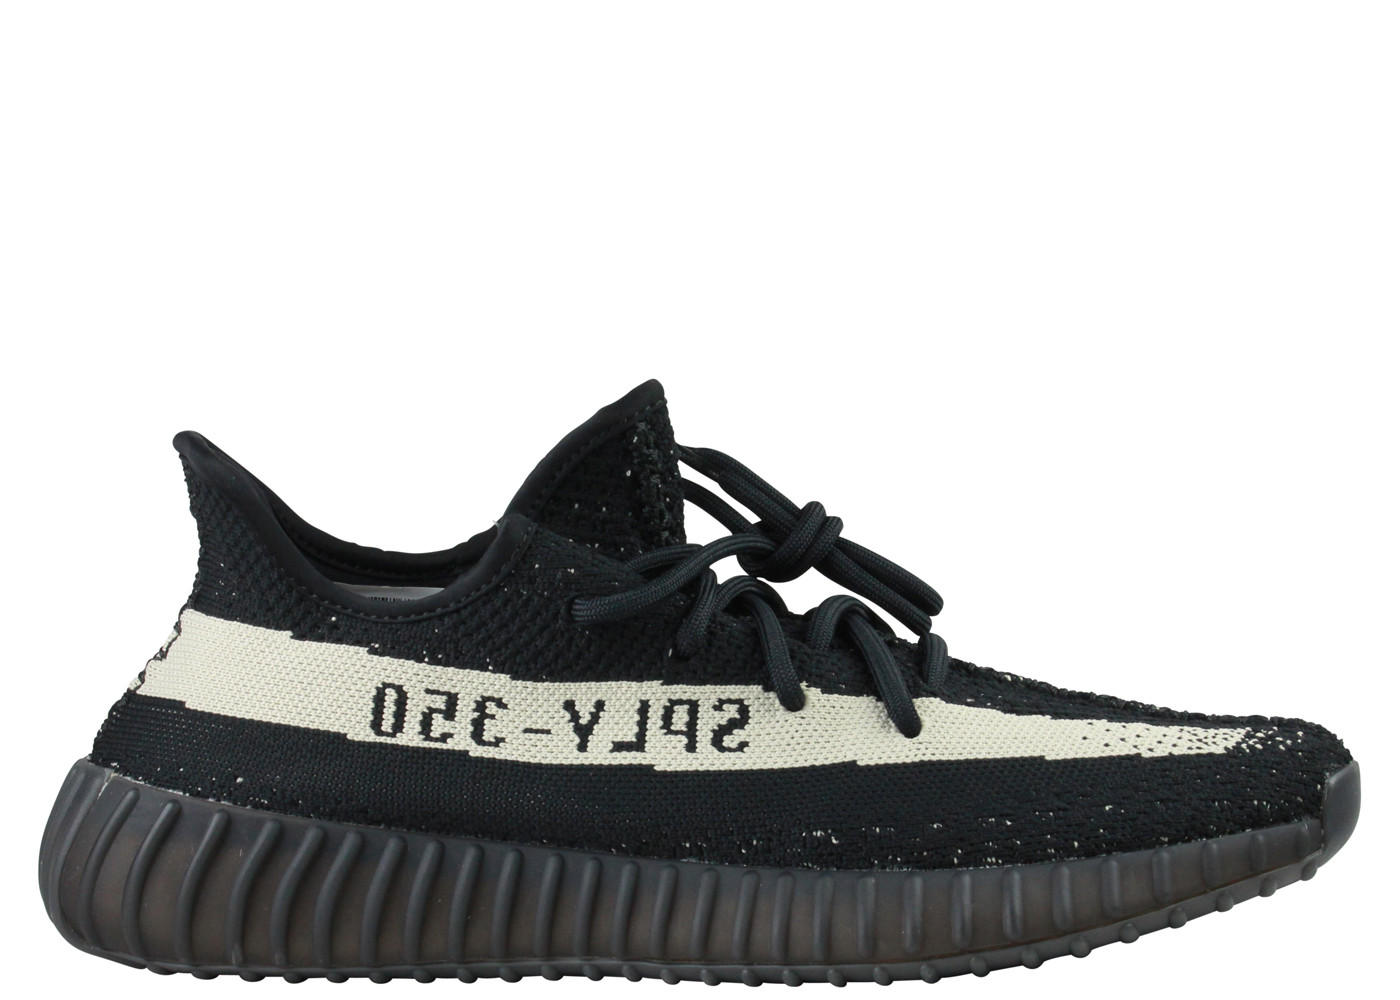 Adidas Yeezy Boost 350 V2 Black Core from KickzStore ce1d779a7